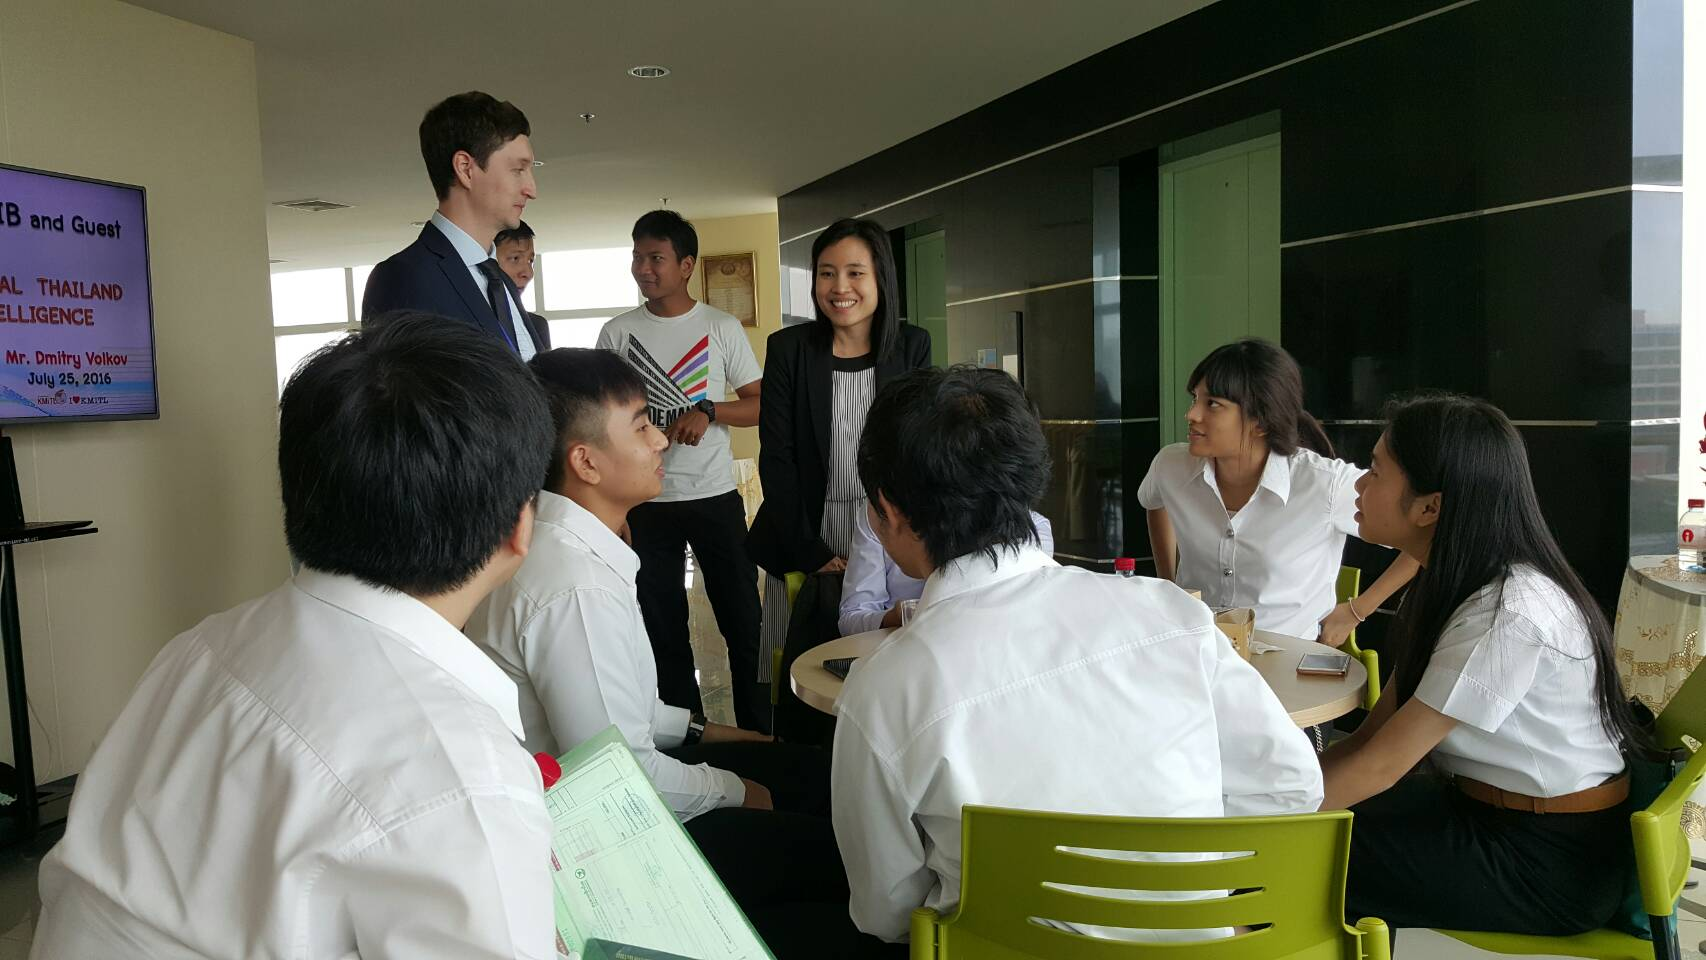 Meeting with students